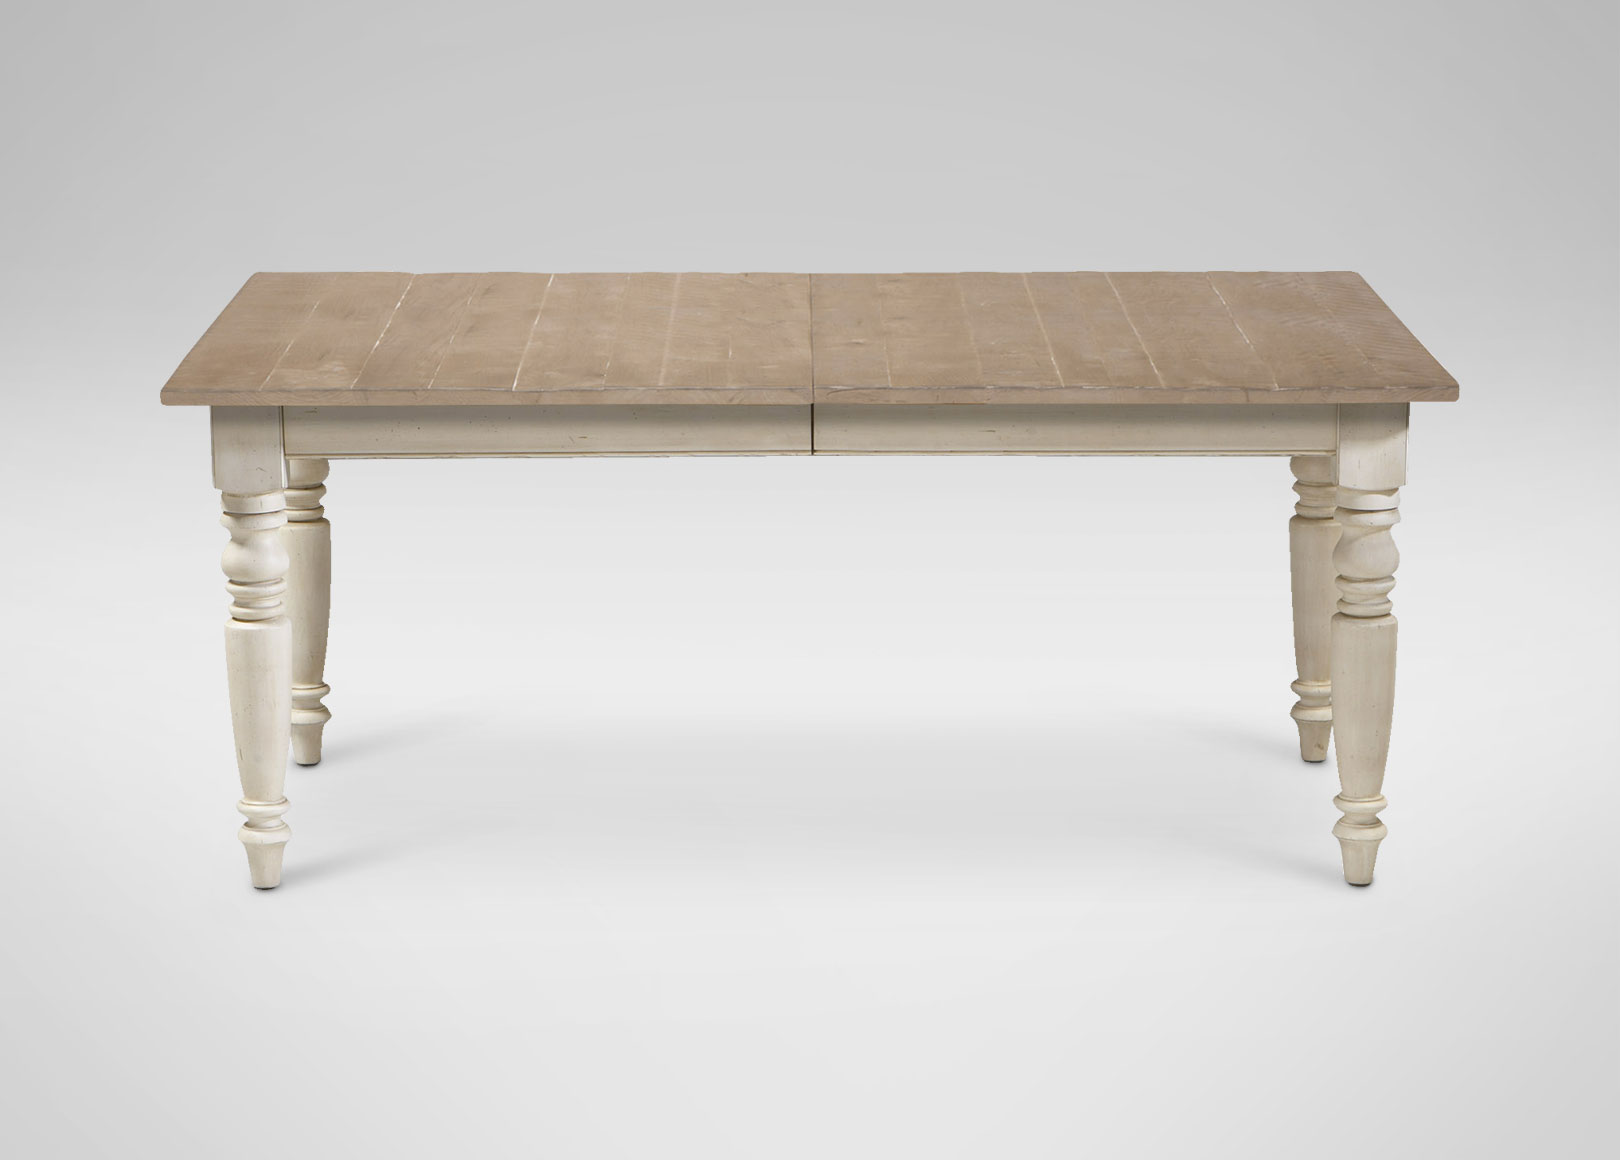 Rustic Dining Table. Images Miller Rustic Dining Table Roughsawn Dakota  Cotton 209610